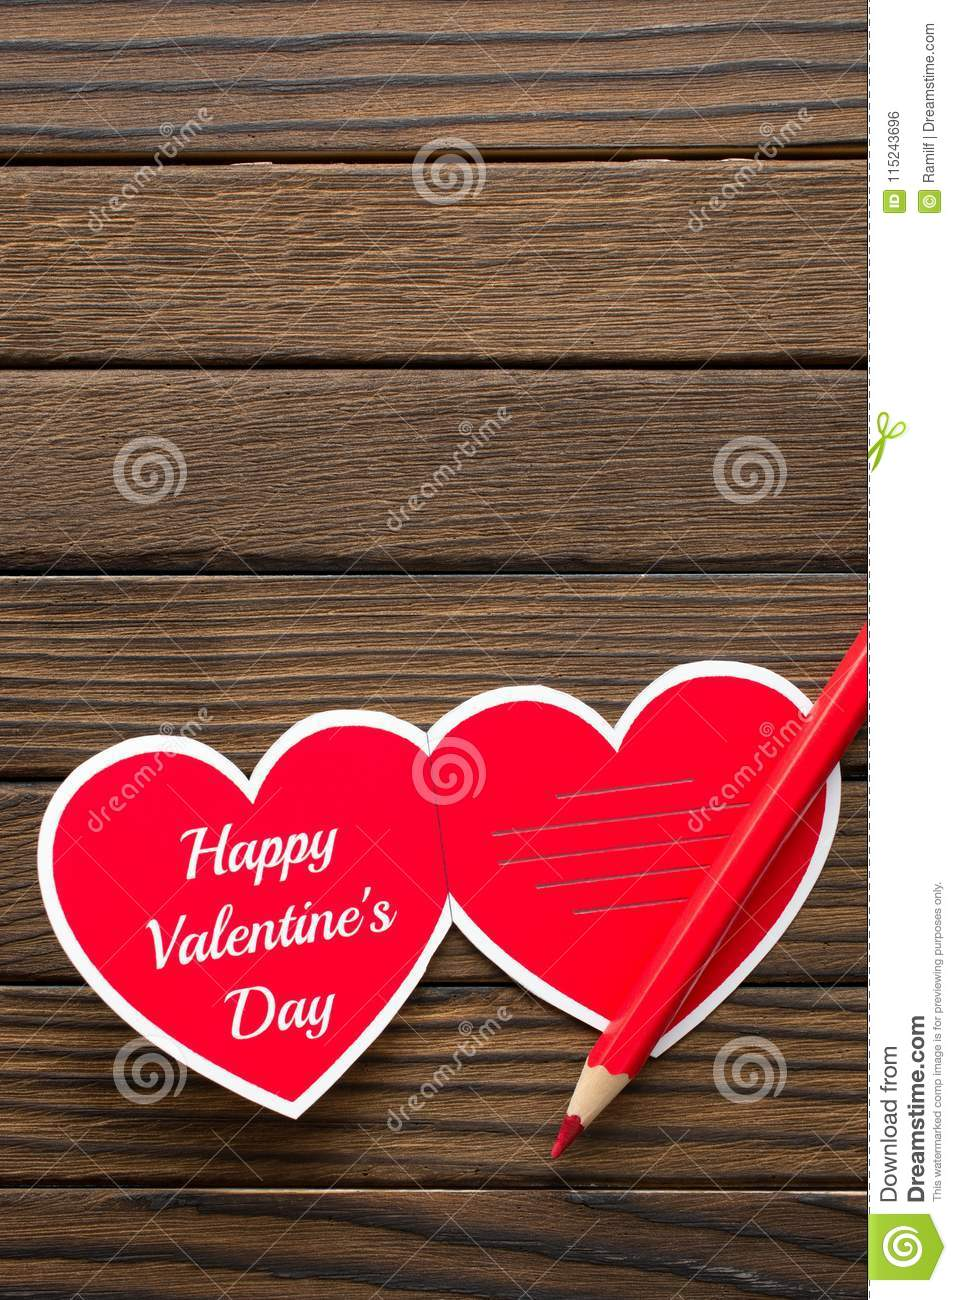 Happy Valentines Day Words On Wooden Background Stock Photo Image